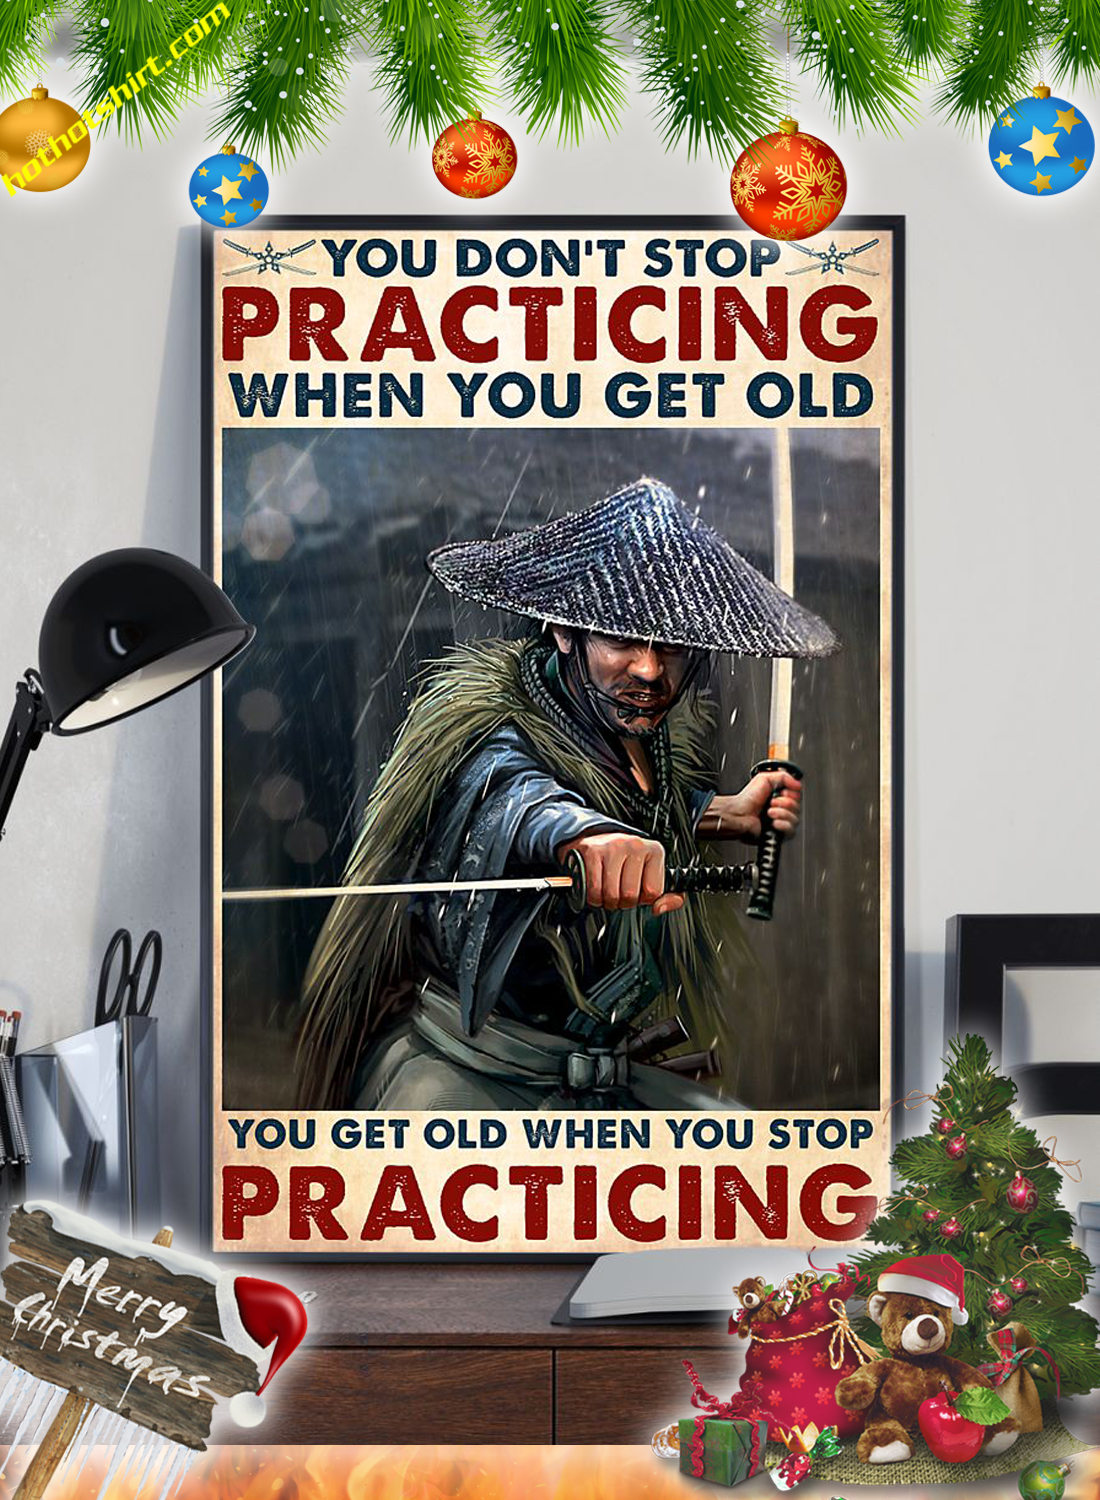 Samurai You don't stop practicing when you get old poster 2